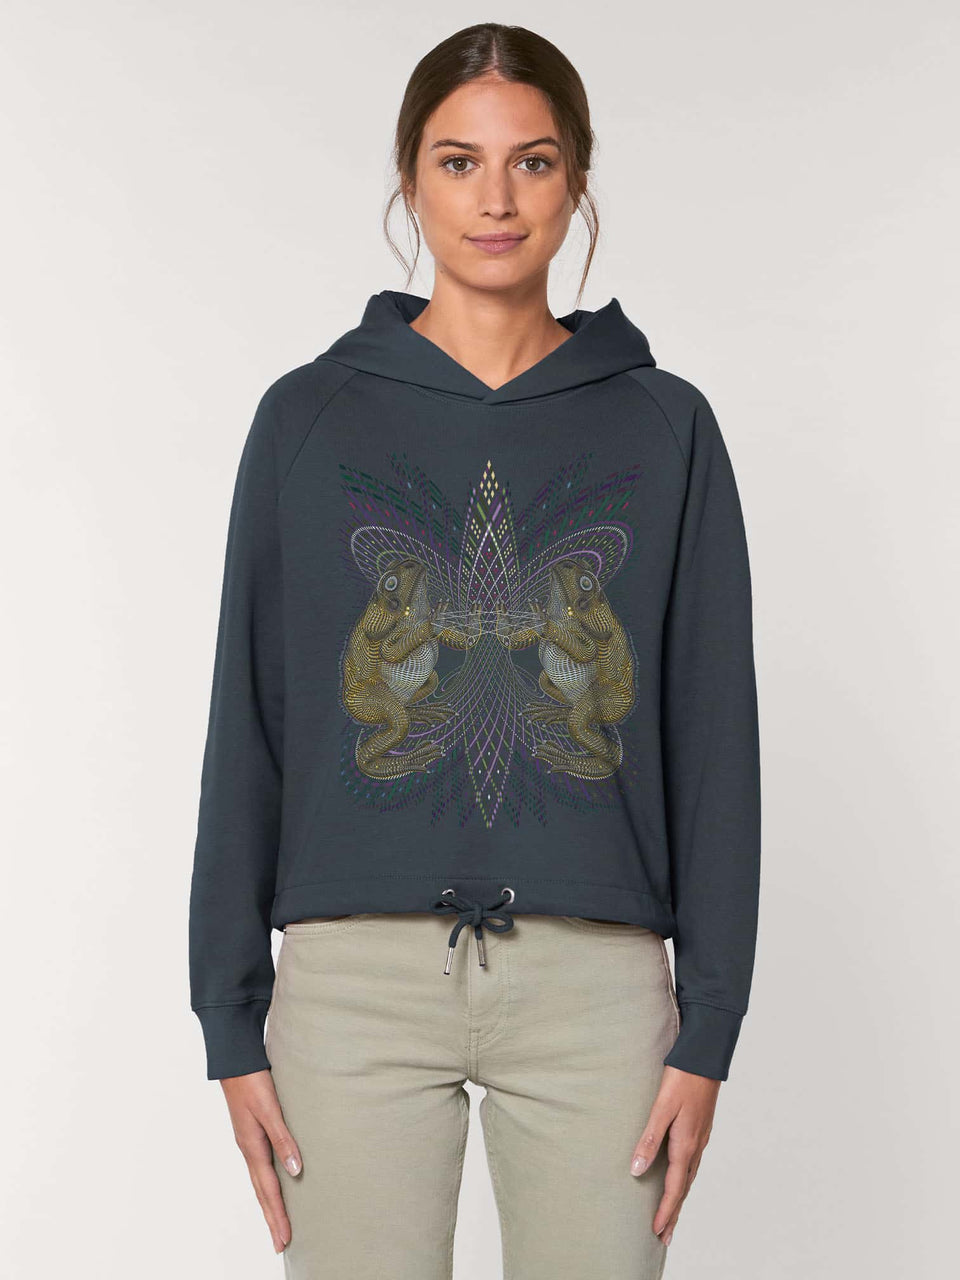 Bufo Alvarius Made To Order Women Cropped Hoodie Sweatshirt - India Ink Grey